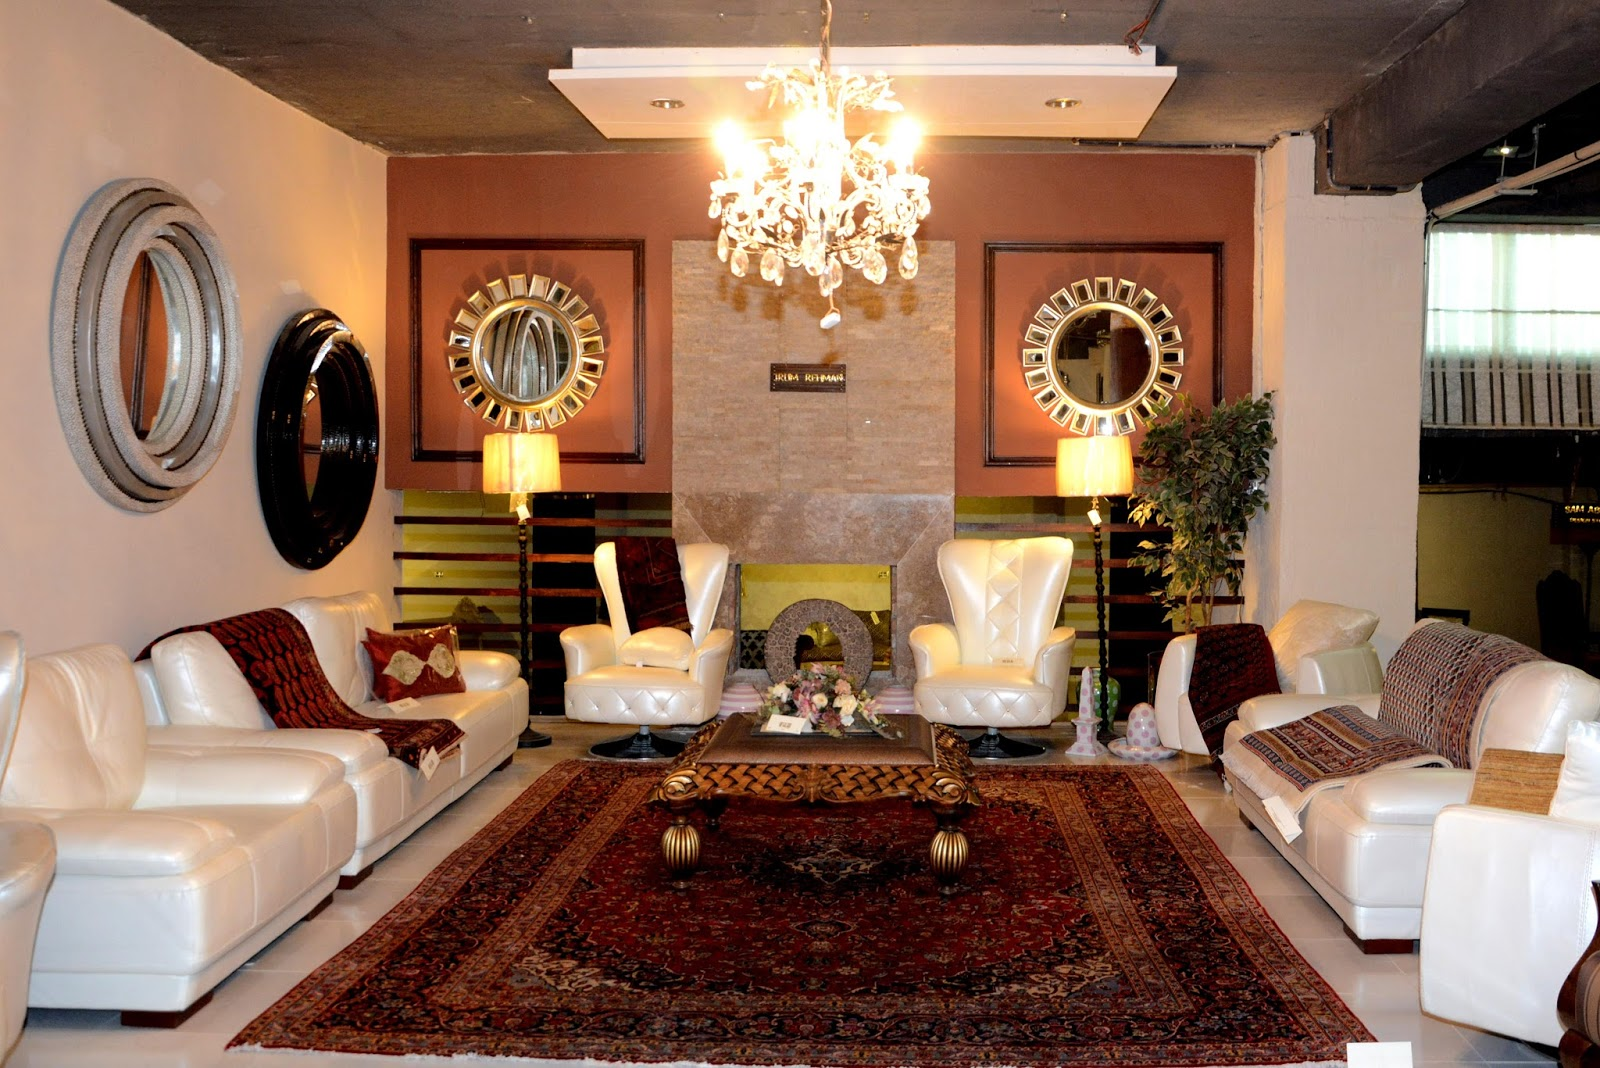 chair design in pakistan espresso leather launch of designers e 39talage furniture museum islamabad